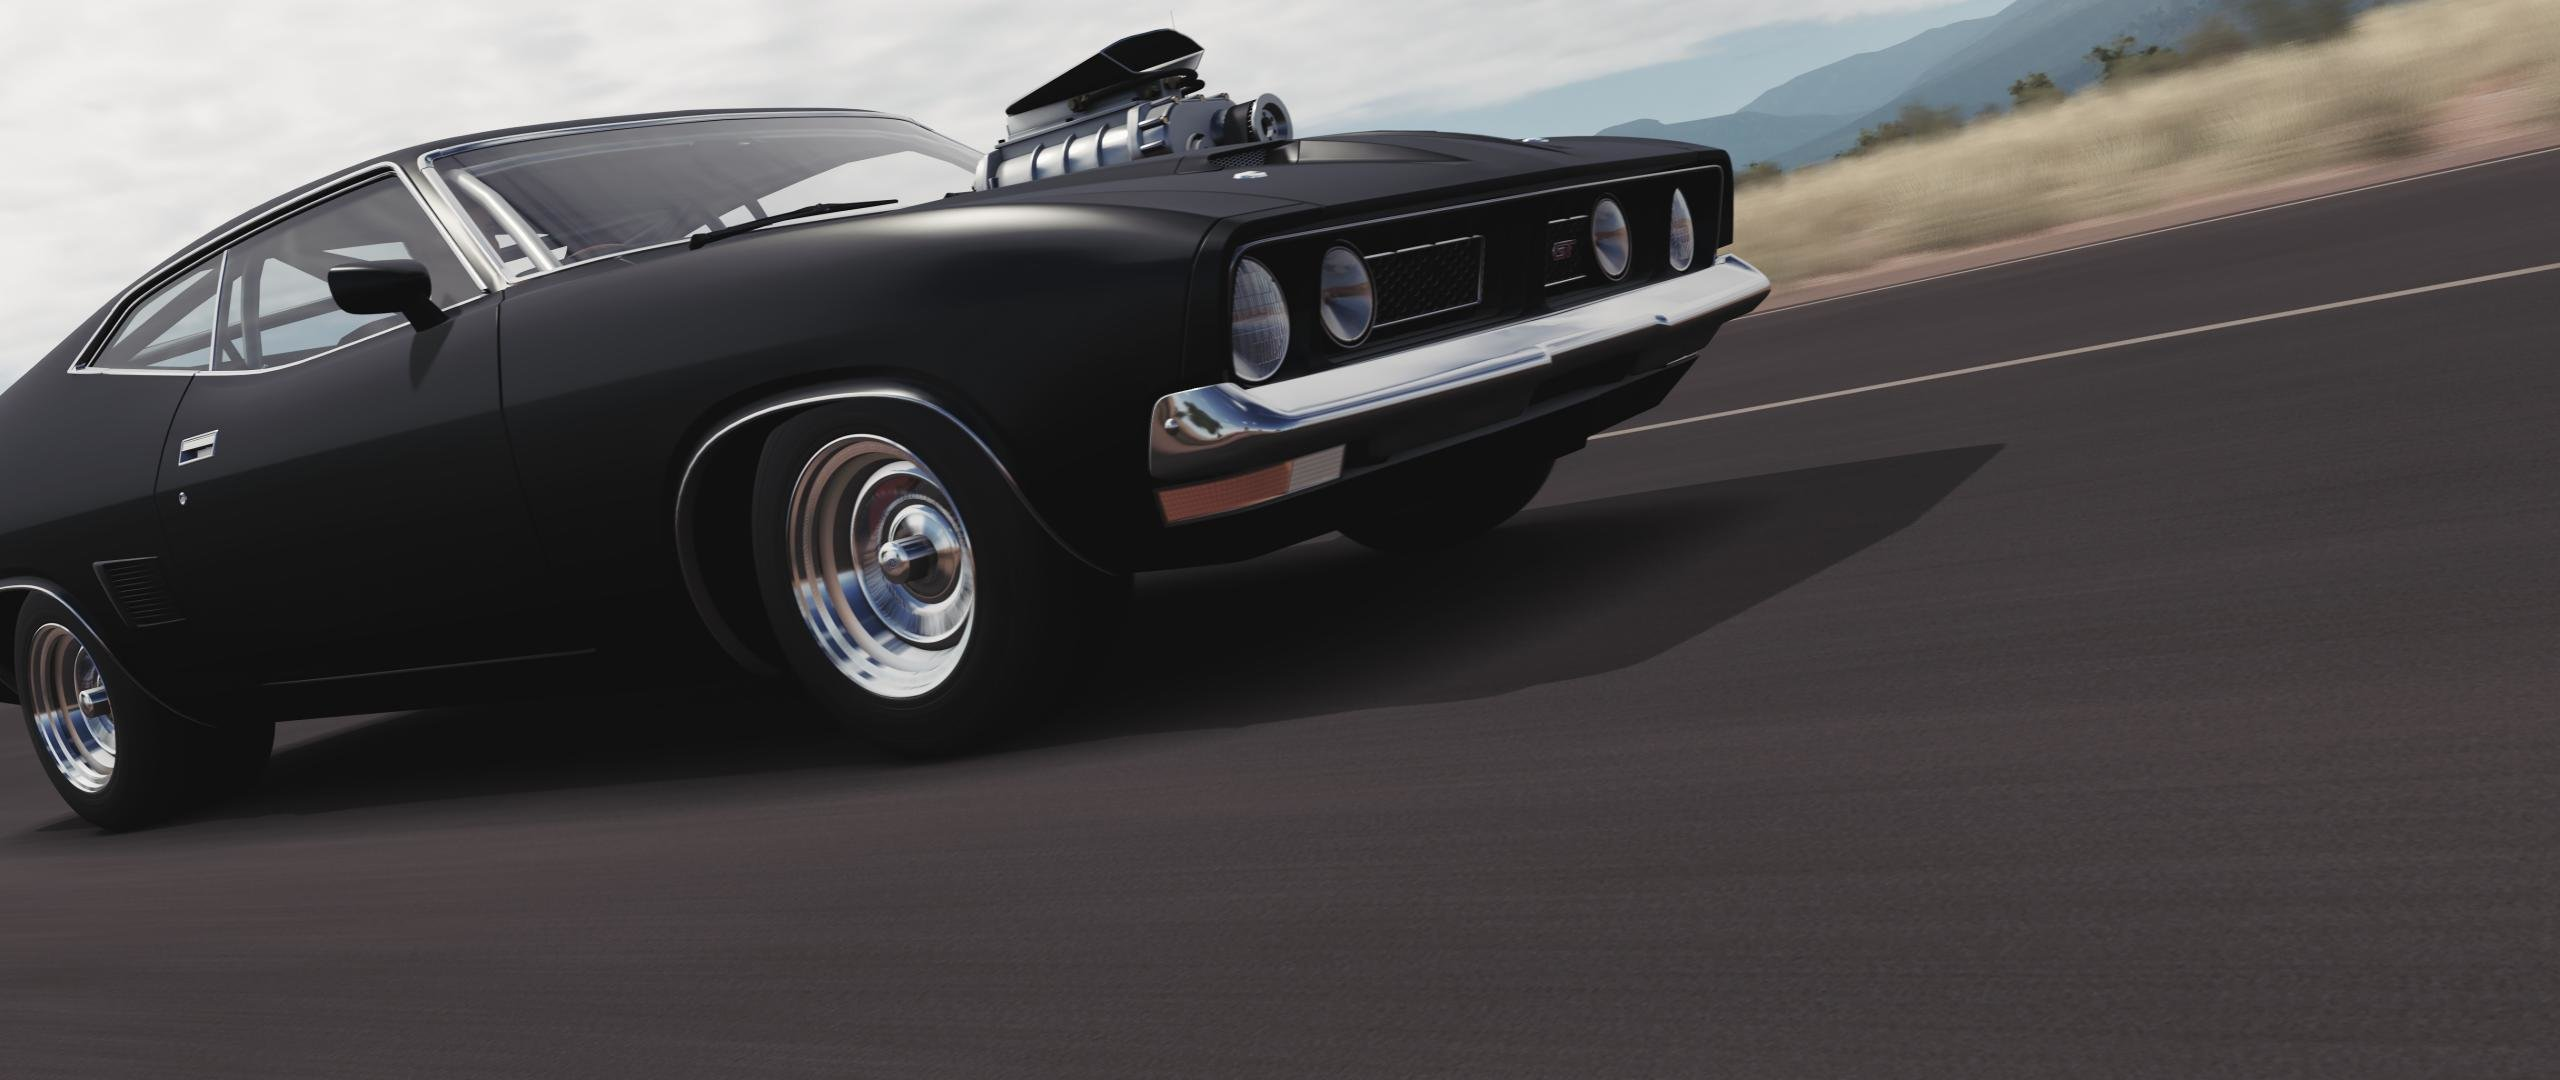 Free Muscle Car High Quality Wallpaper ID:466153 For Hd 2560x1080 Desktop